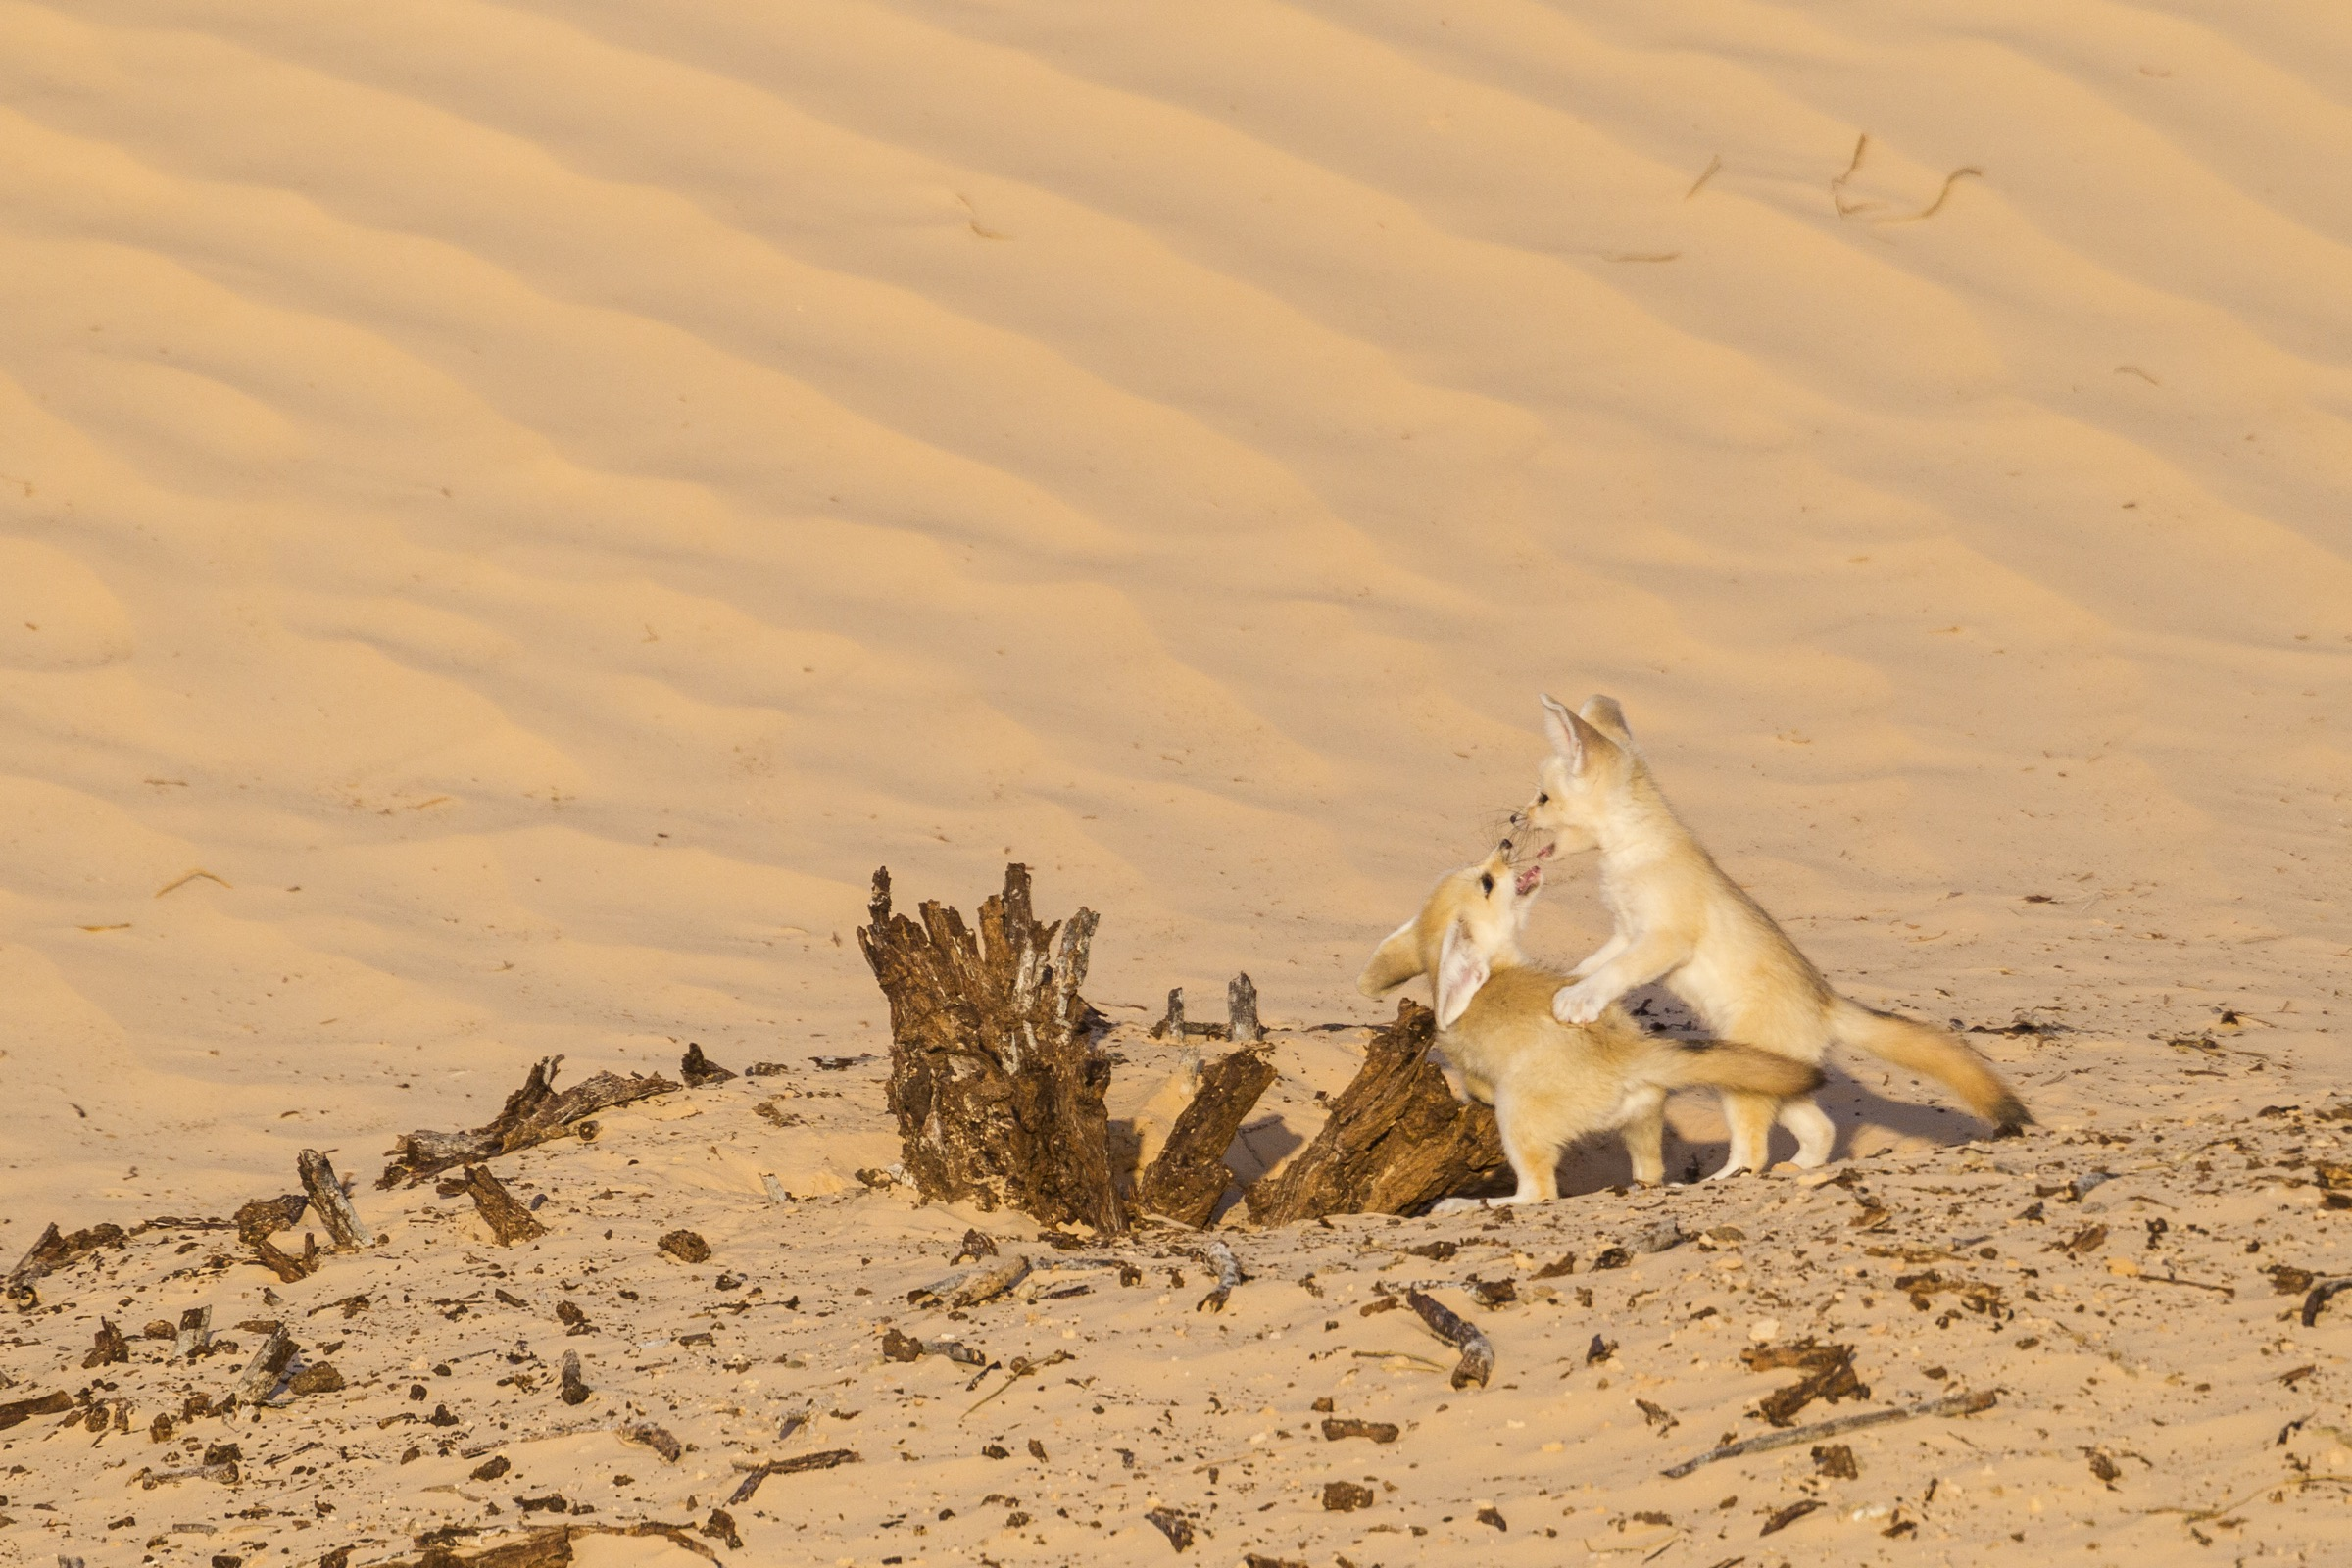 A pair of fennec fox pups play near the entrance to their den. Play behavior is common in fennec foxes, even among adults.